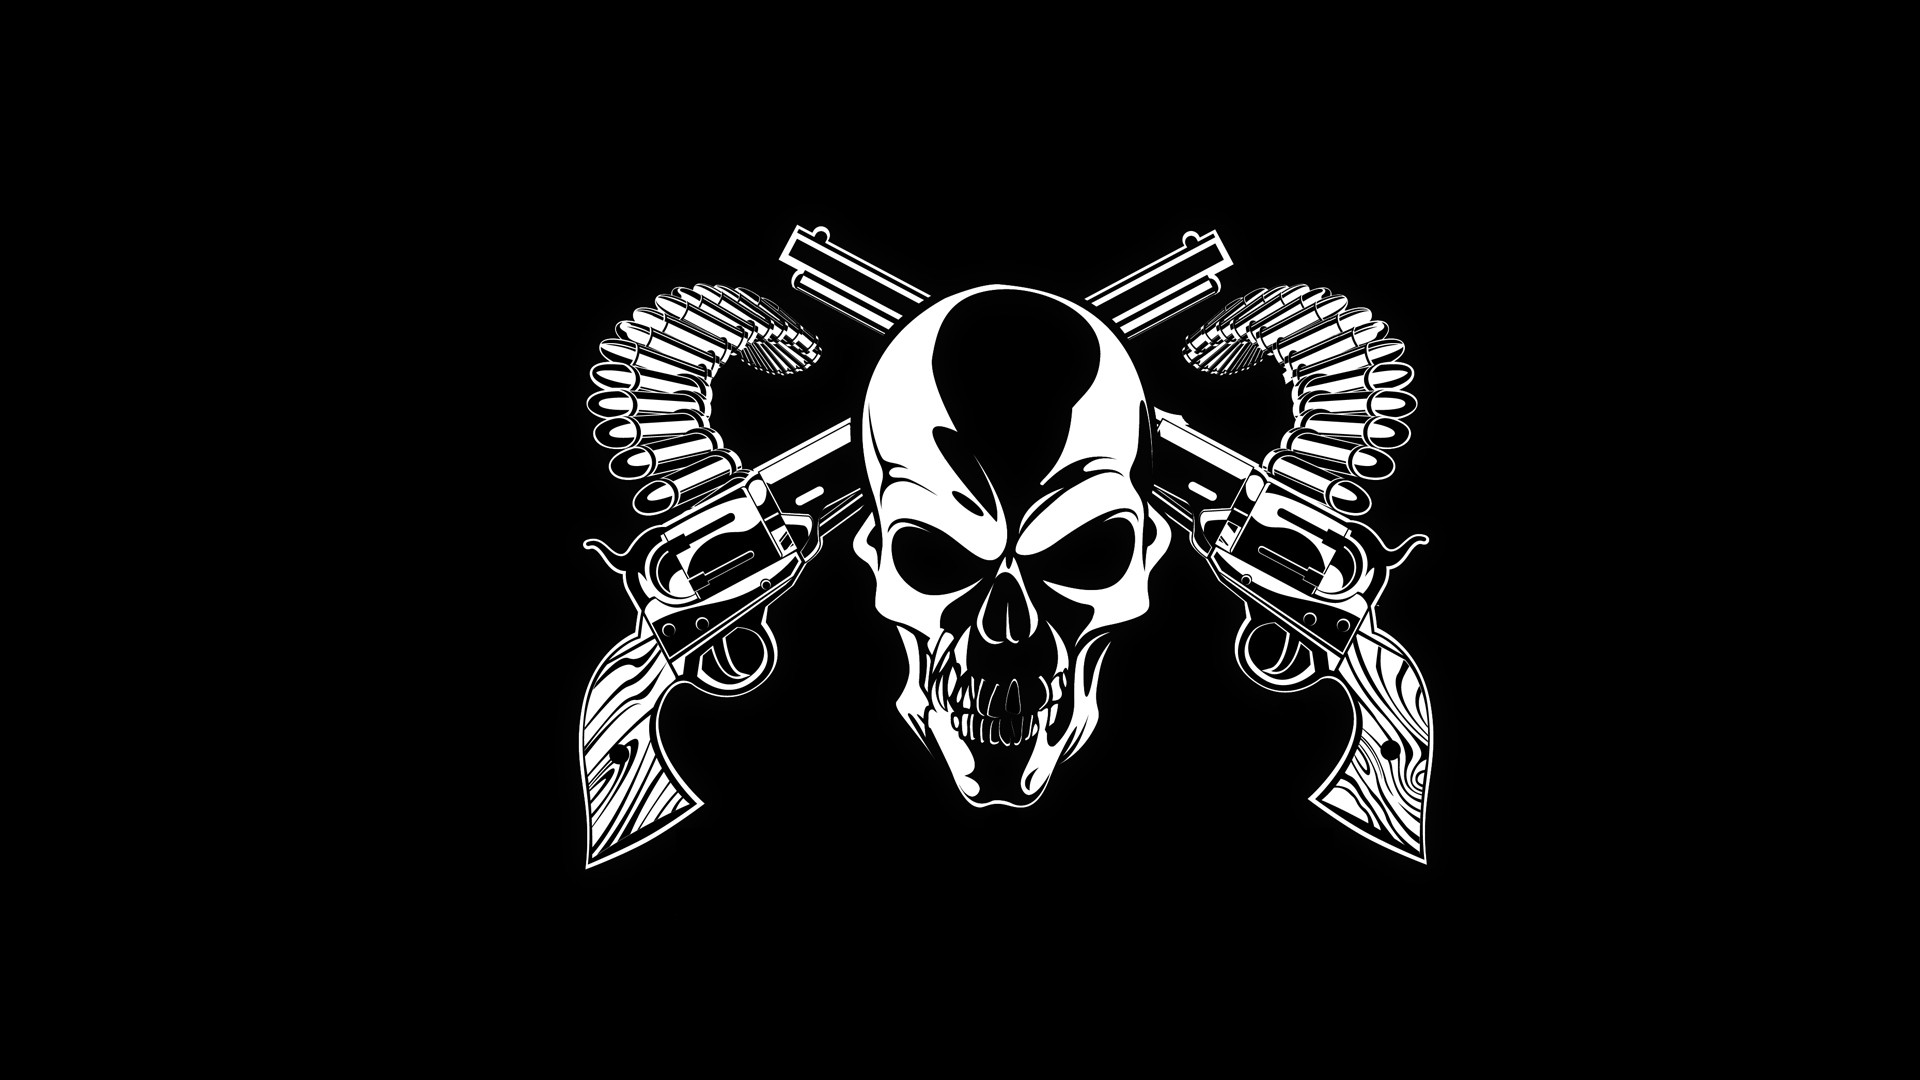 Skulls wallpaper download free awesome high resolution 1920x1080 girly skull background wallpaper wallpaper hd background desktop download voltagebd Images